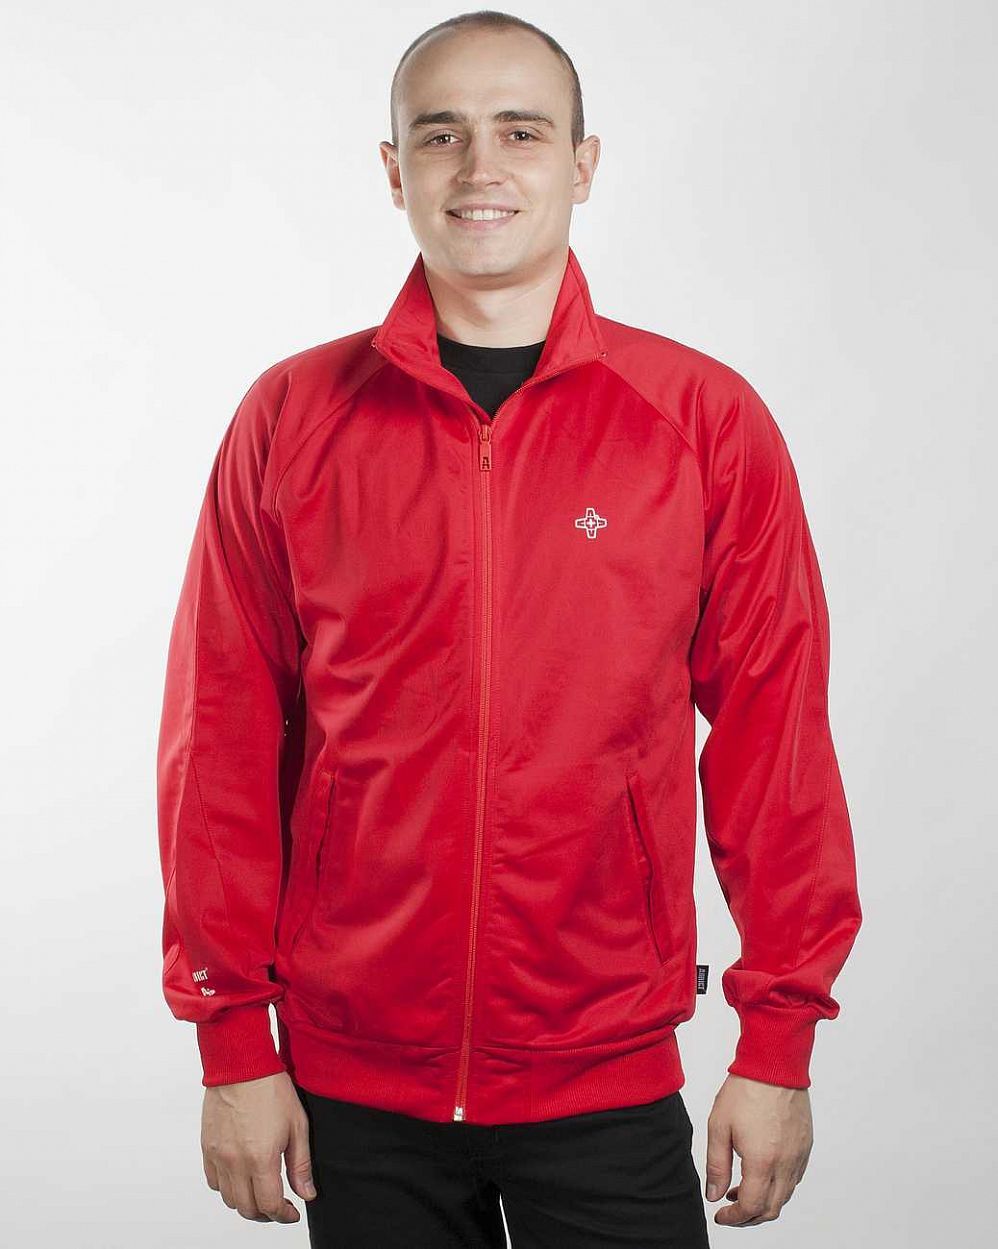 купить Олимпийка Addict Icon Tracksuit Top red в Москве